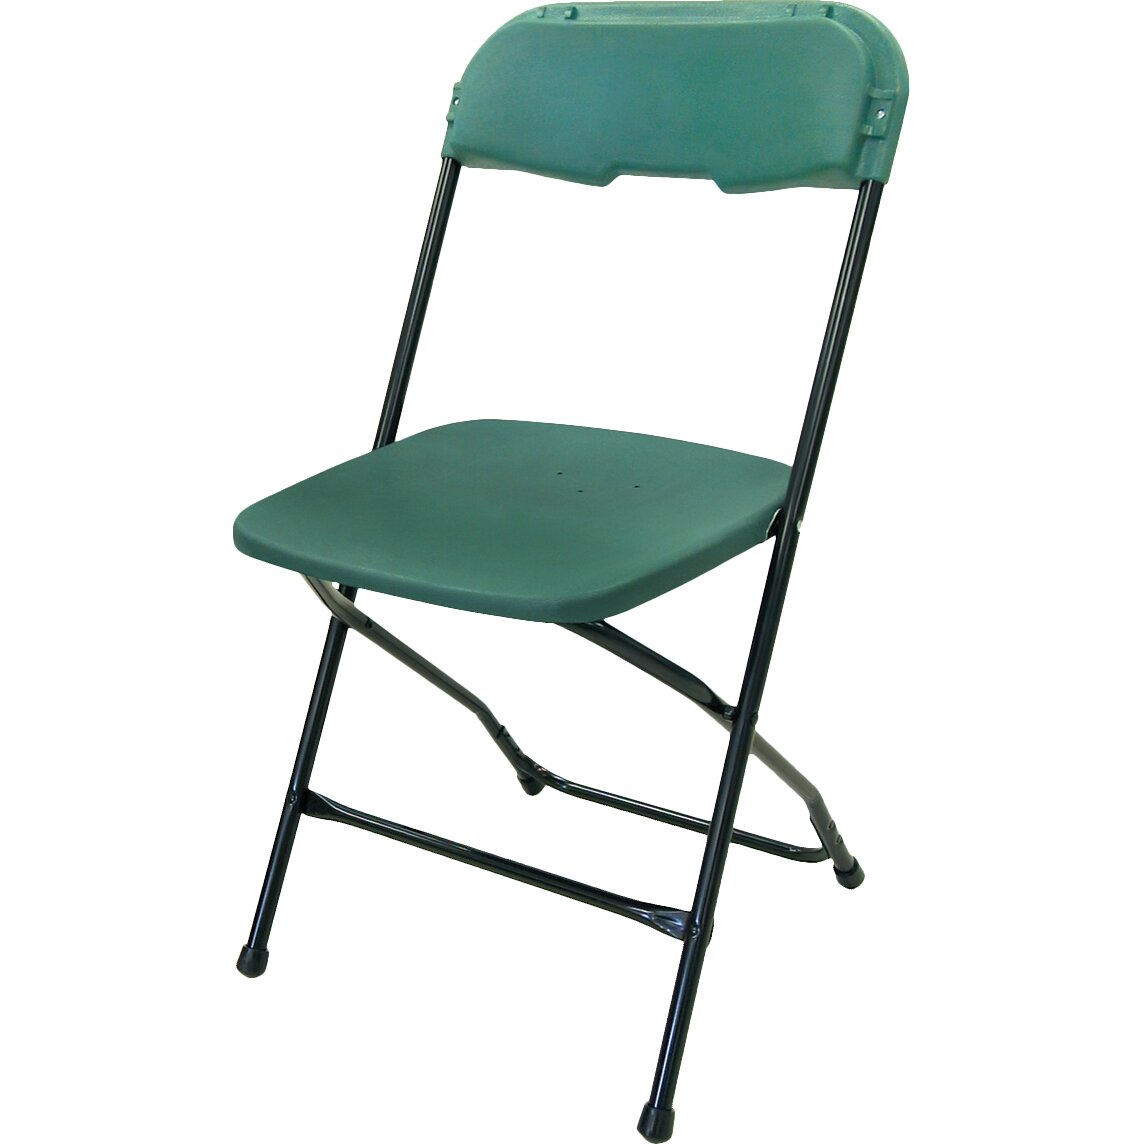 McCourt Manufacturing Series 5 Plastic Folding Chair & Reviews